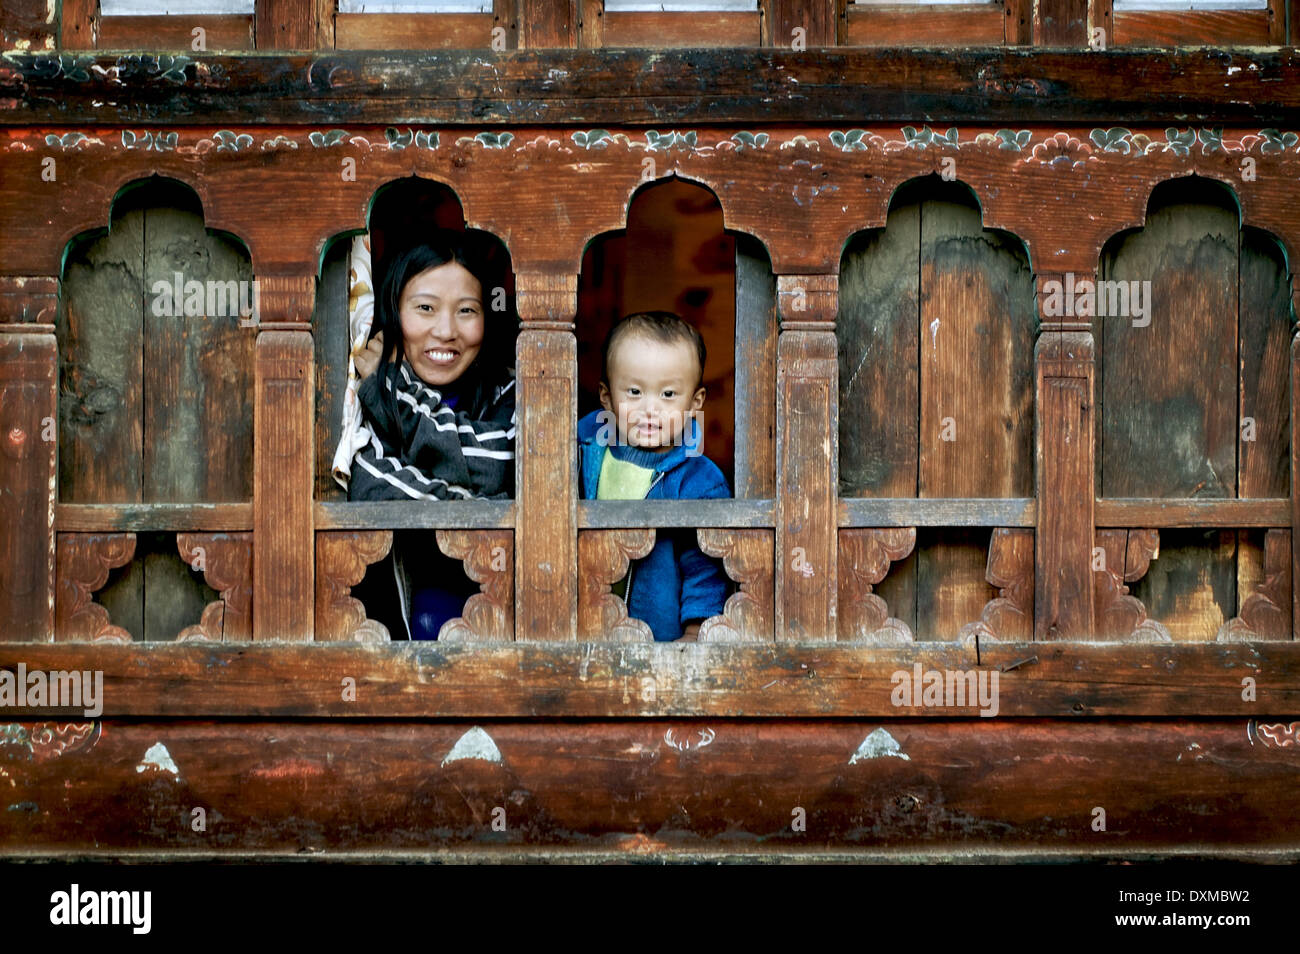 Bhutanese woman and child in window in Paro, Bhutan. Digitally Manipulated Image. Stylised by sharpening and enhancing color. - Stock Image